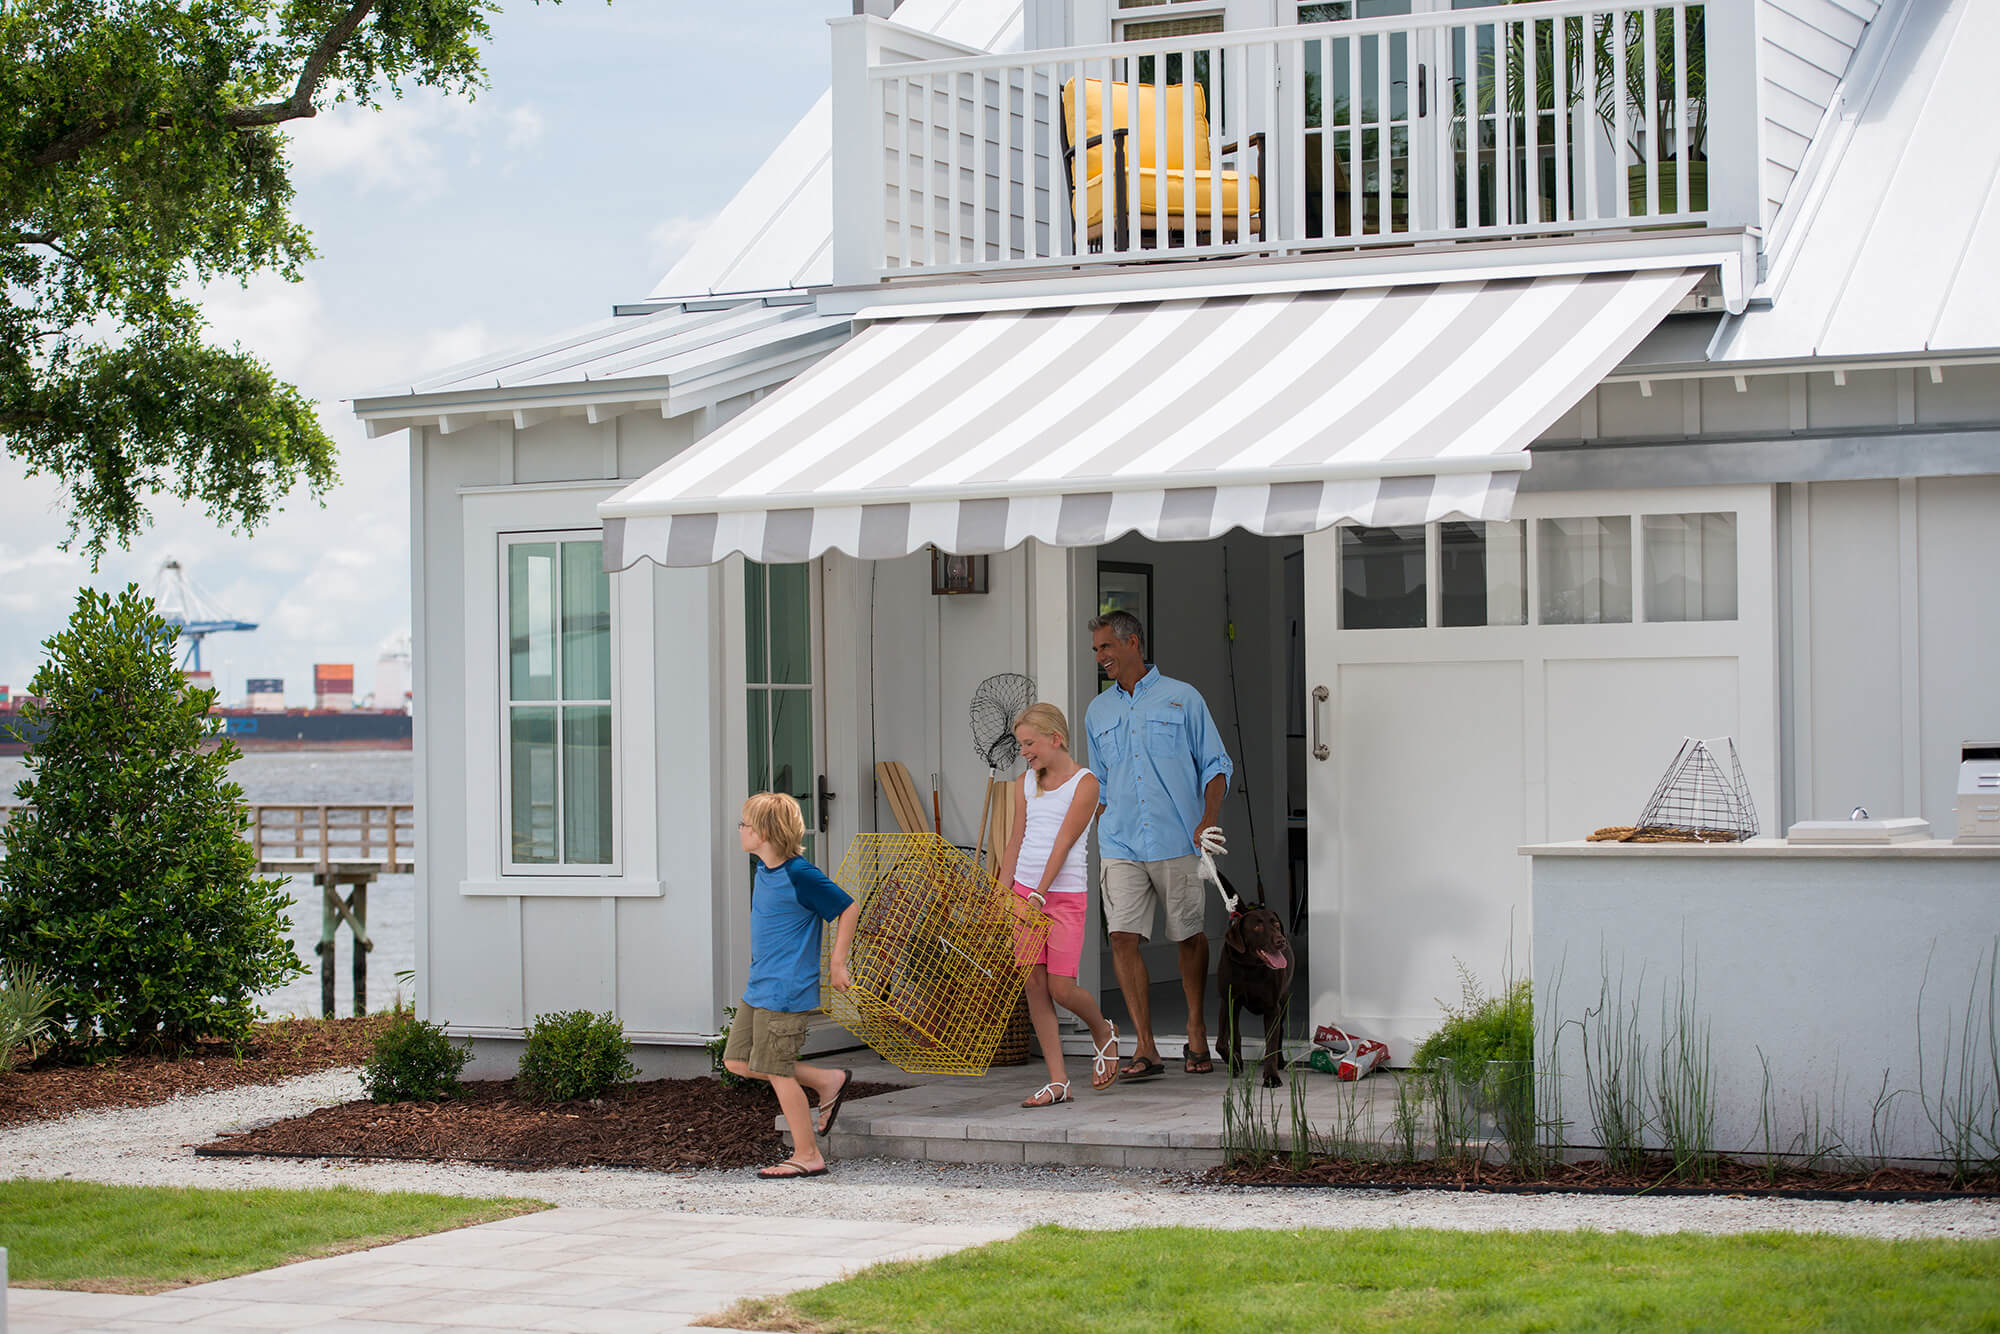 Family walking under grey and white striped retractable awning